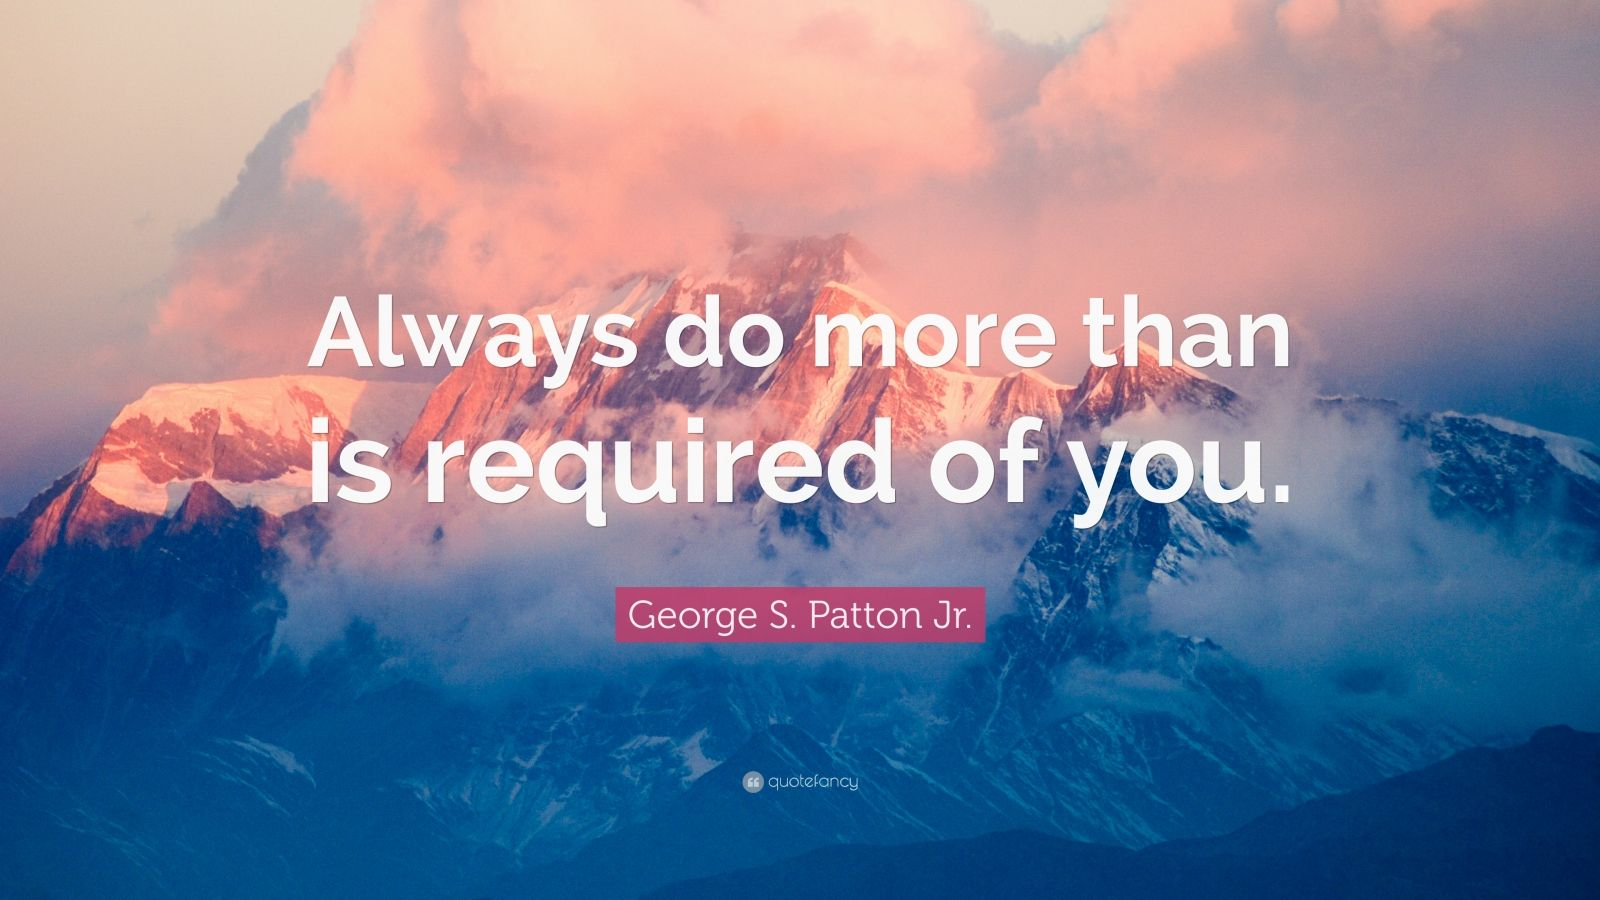 """George S. Patton Jr. Quote: """"Always do more than is required of you."""""""